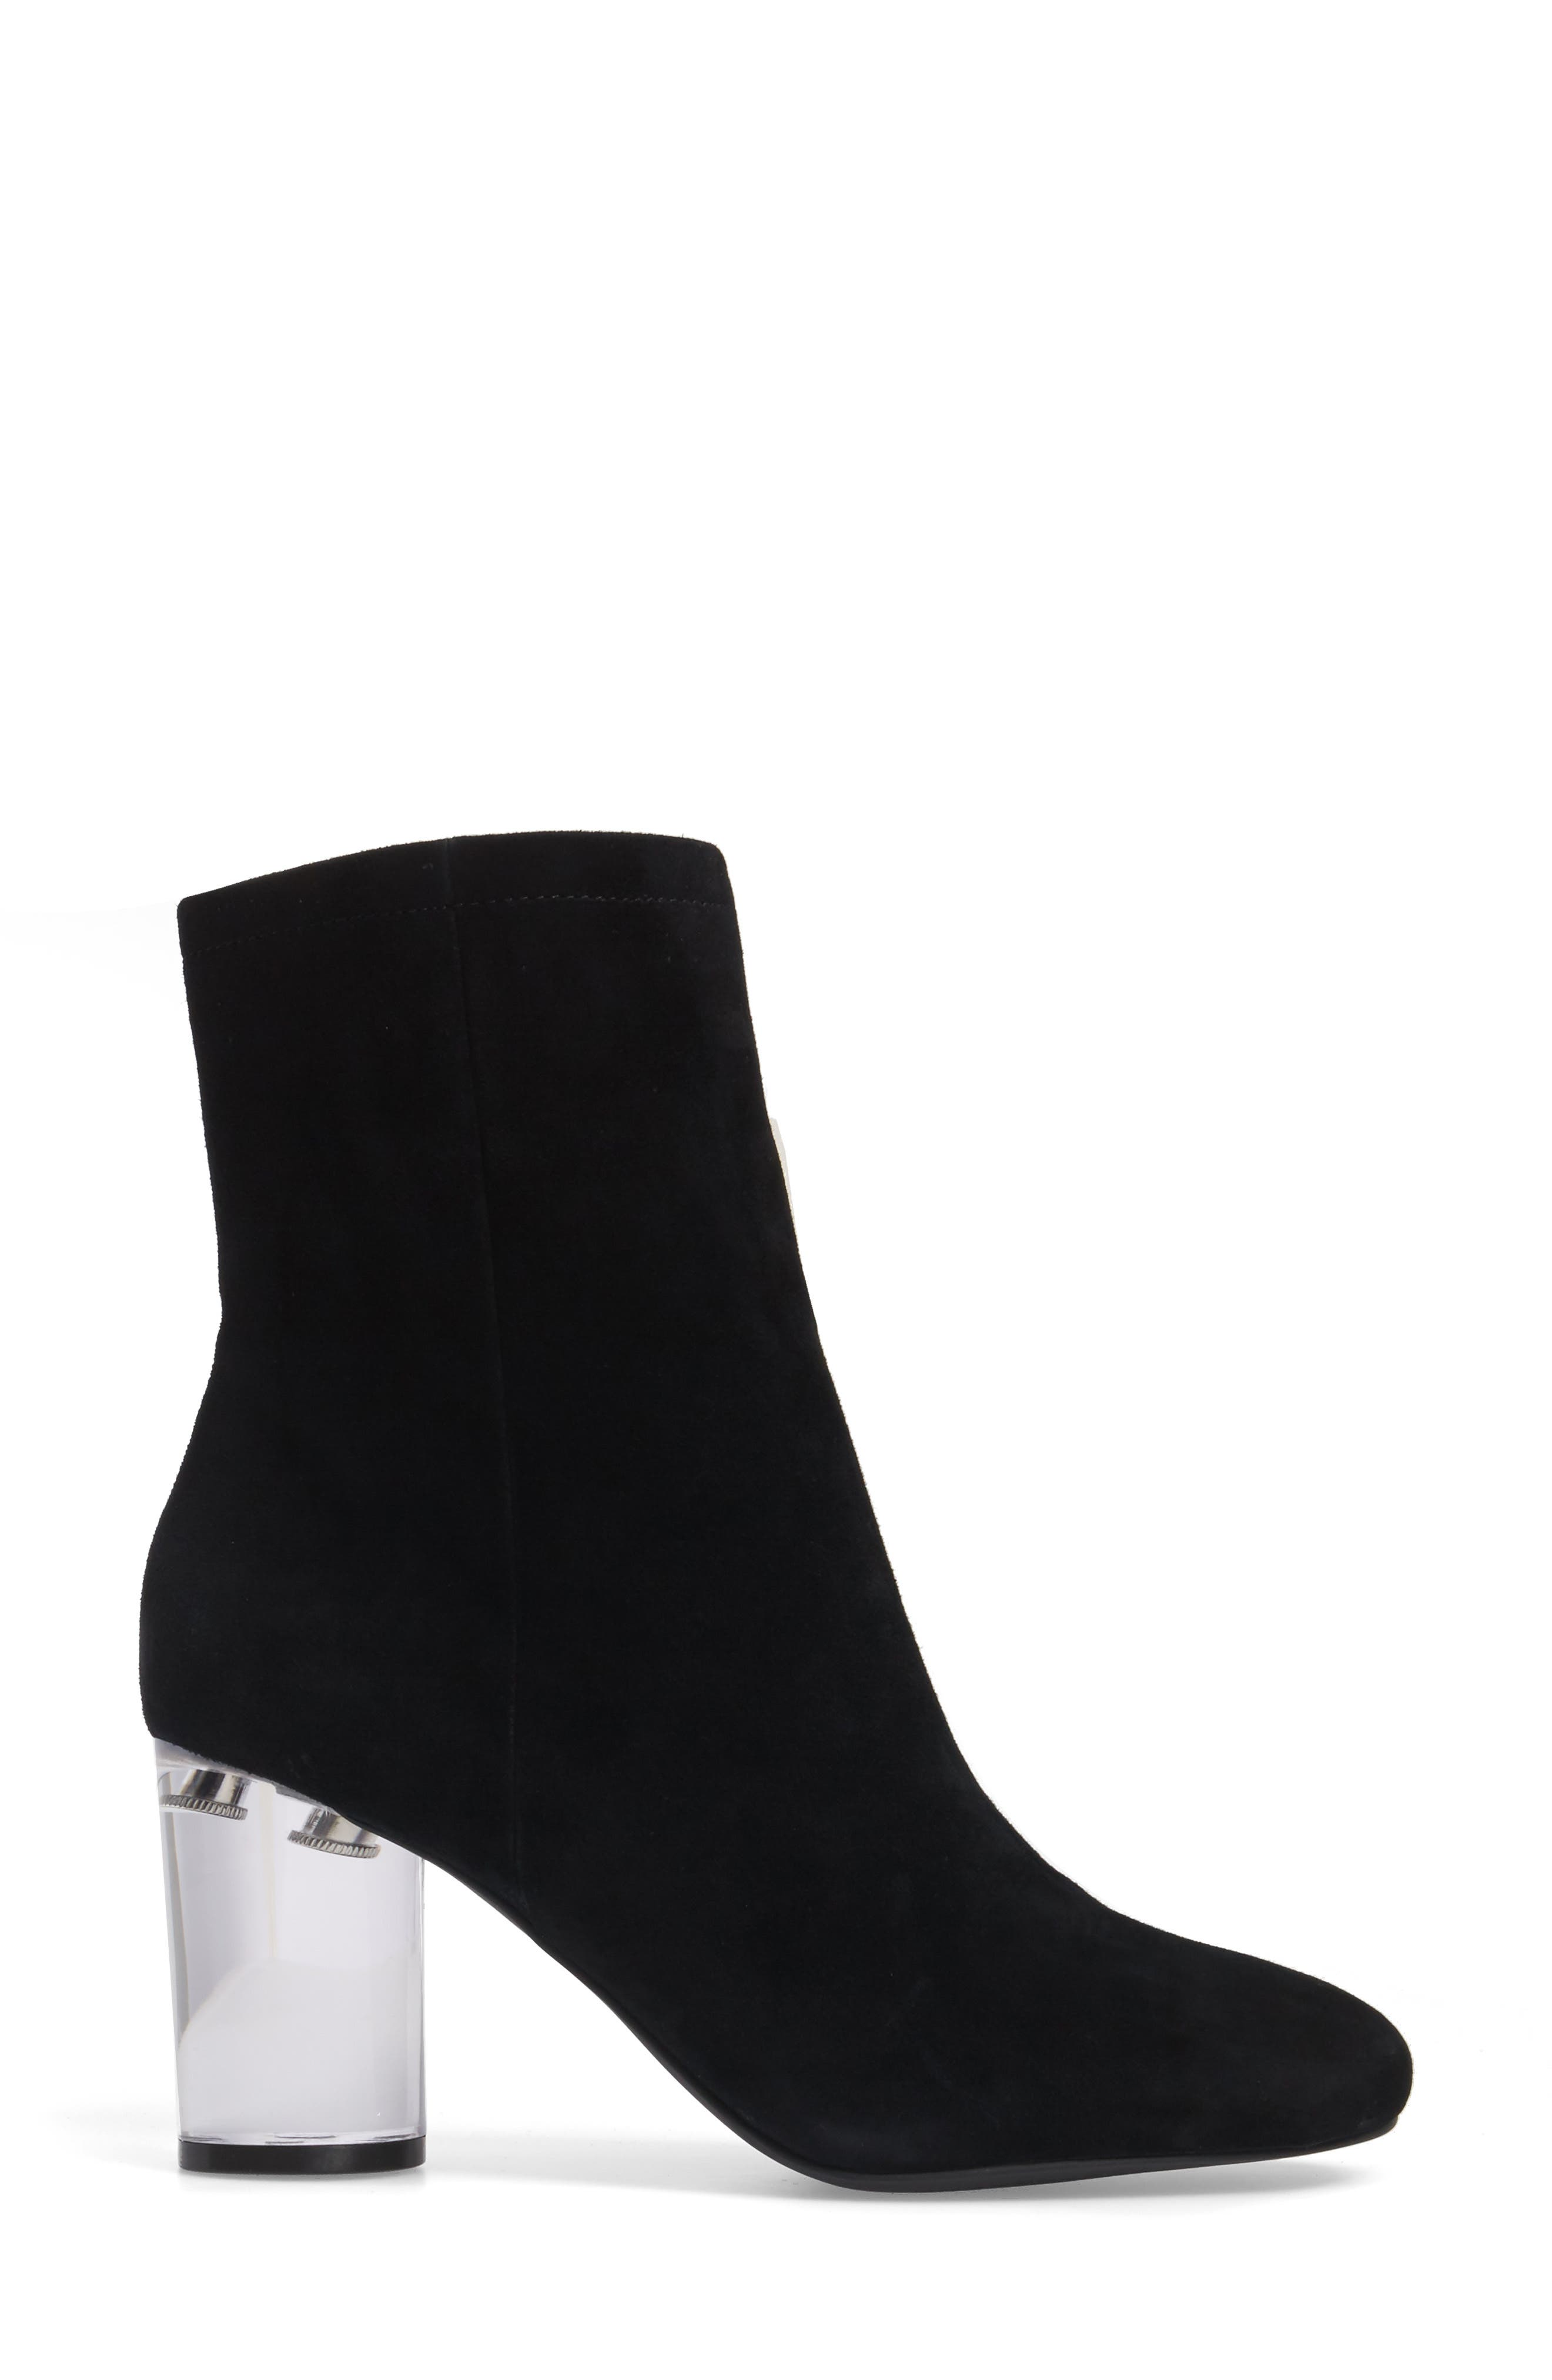 Merta Column Heel Bootie,                             Alternate thumbnail 3, color,                             001